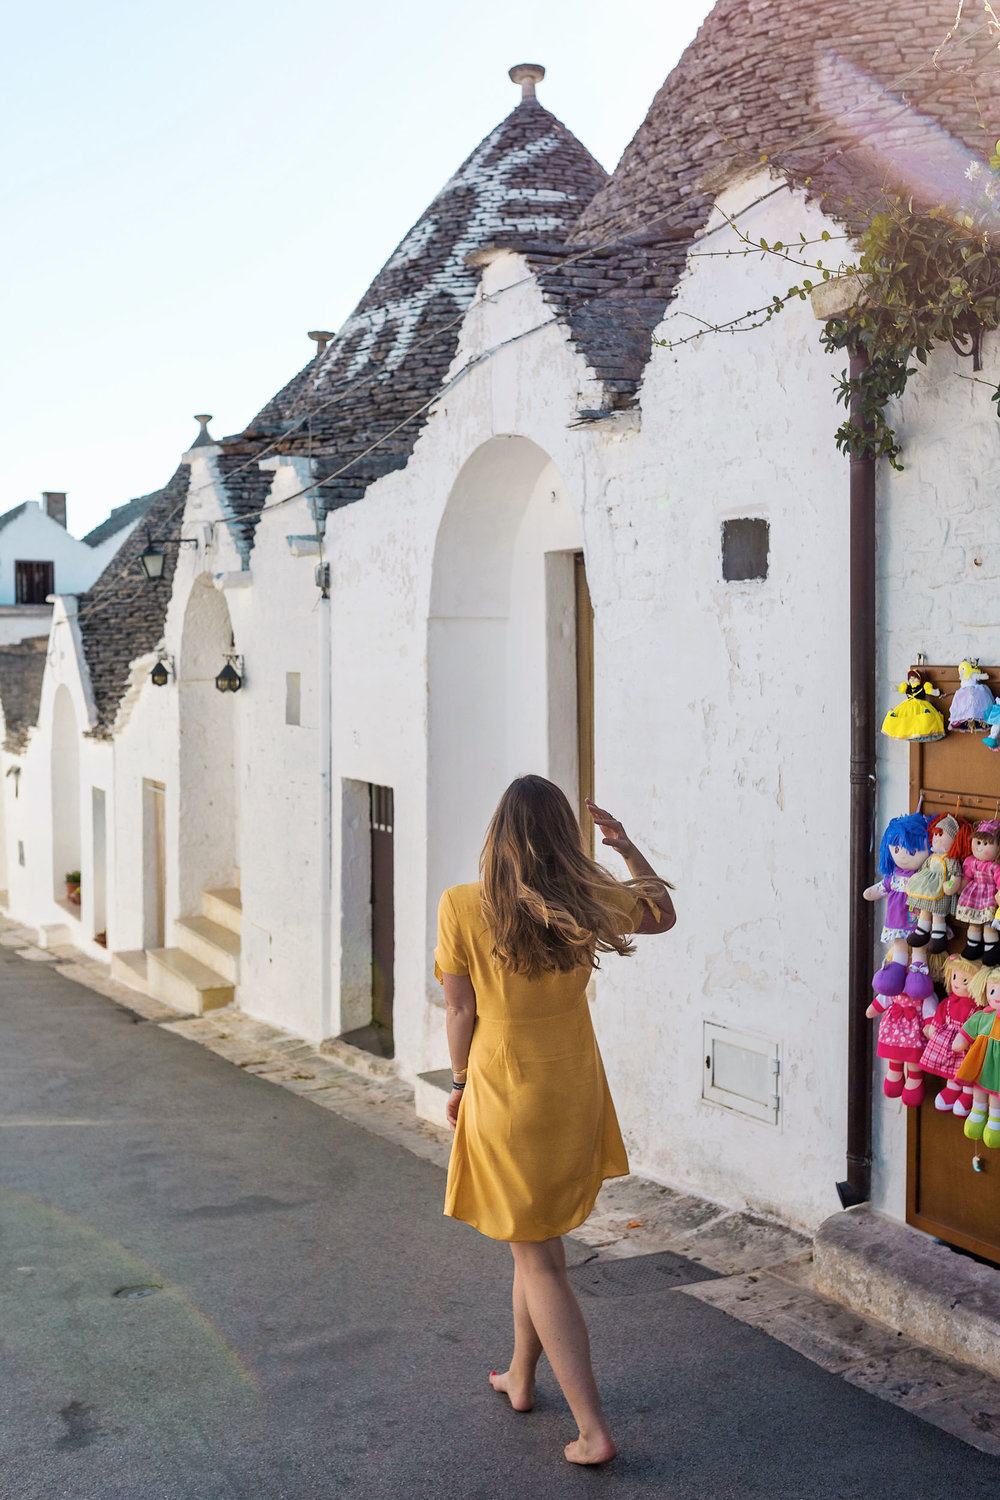 My favorite thing to do in Alberobello, Puglia, Italy: explore!